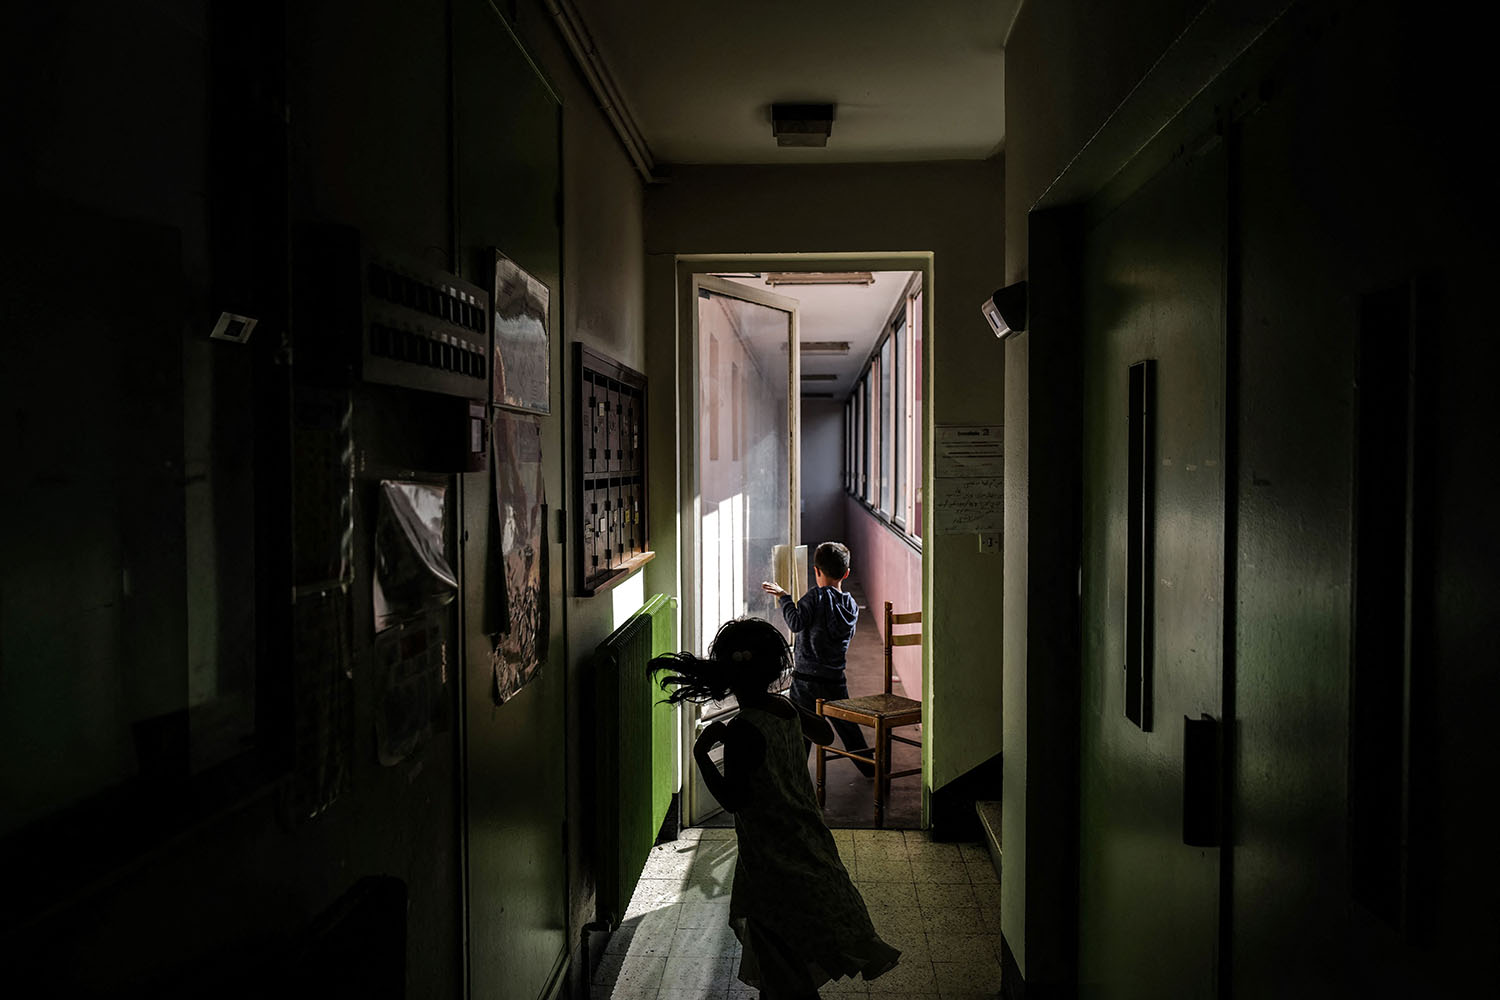 Children play in a corridor of a building just as Afghan refugee families arrive after their evacuation from Kabul in Villeurbanne, France, on Aug. 31. Olivier Chassignole/AFP via Getty Images